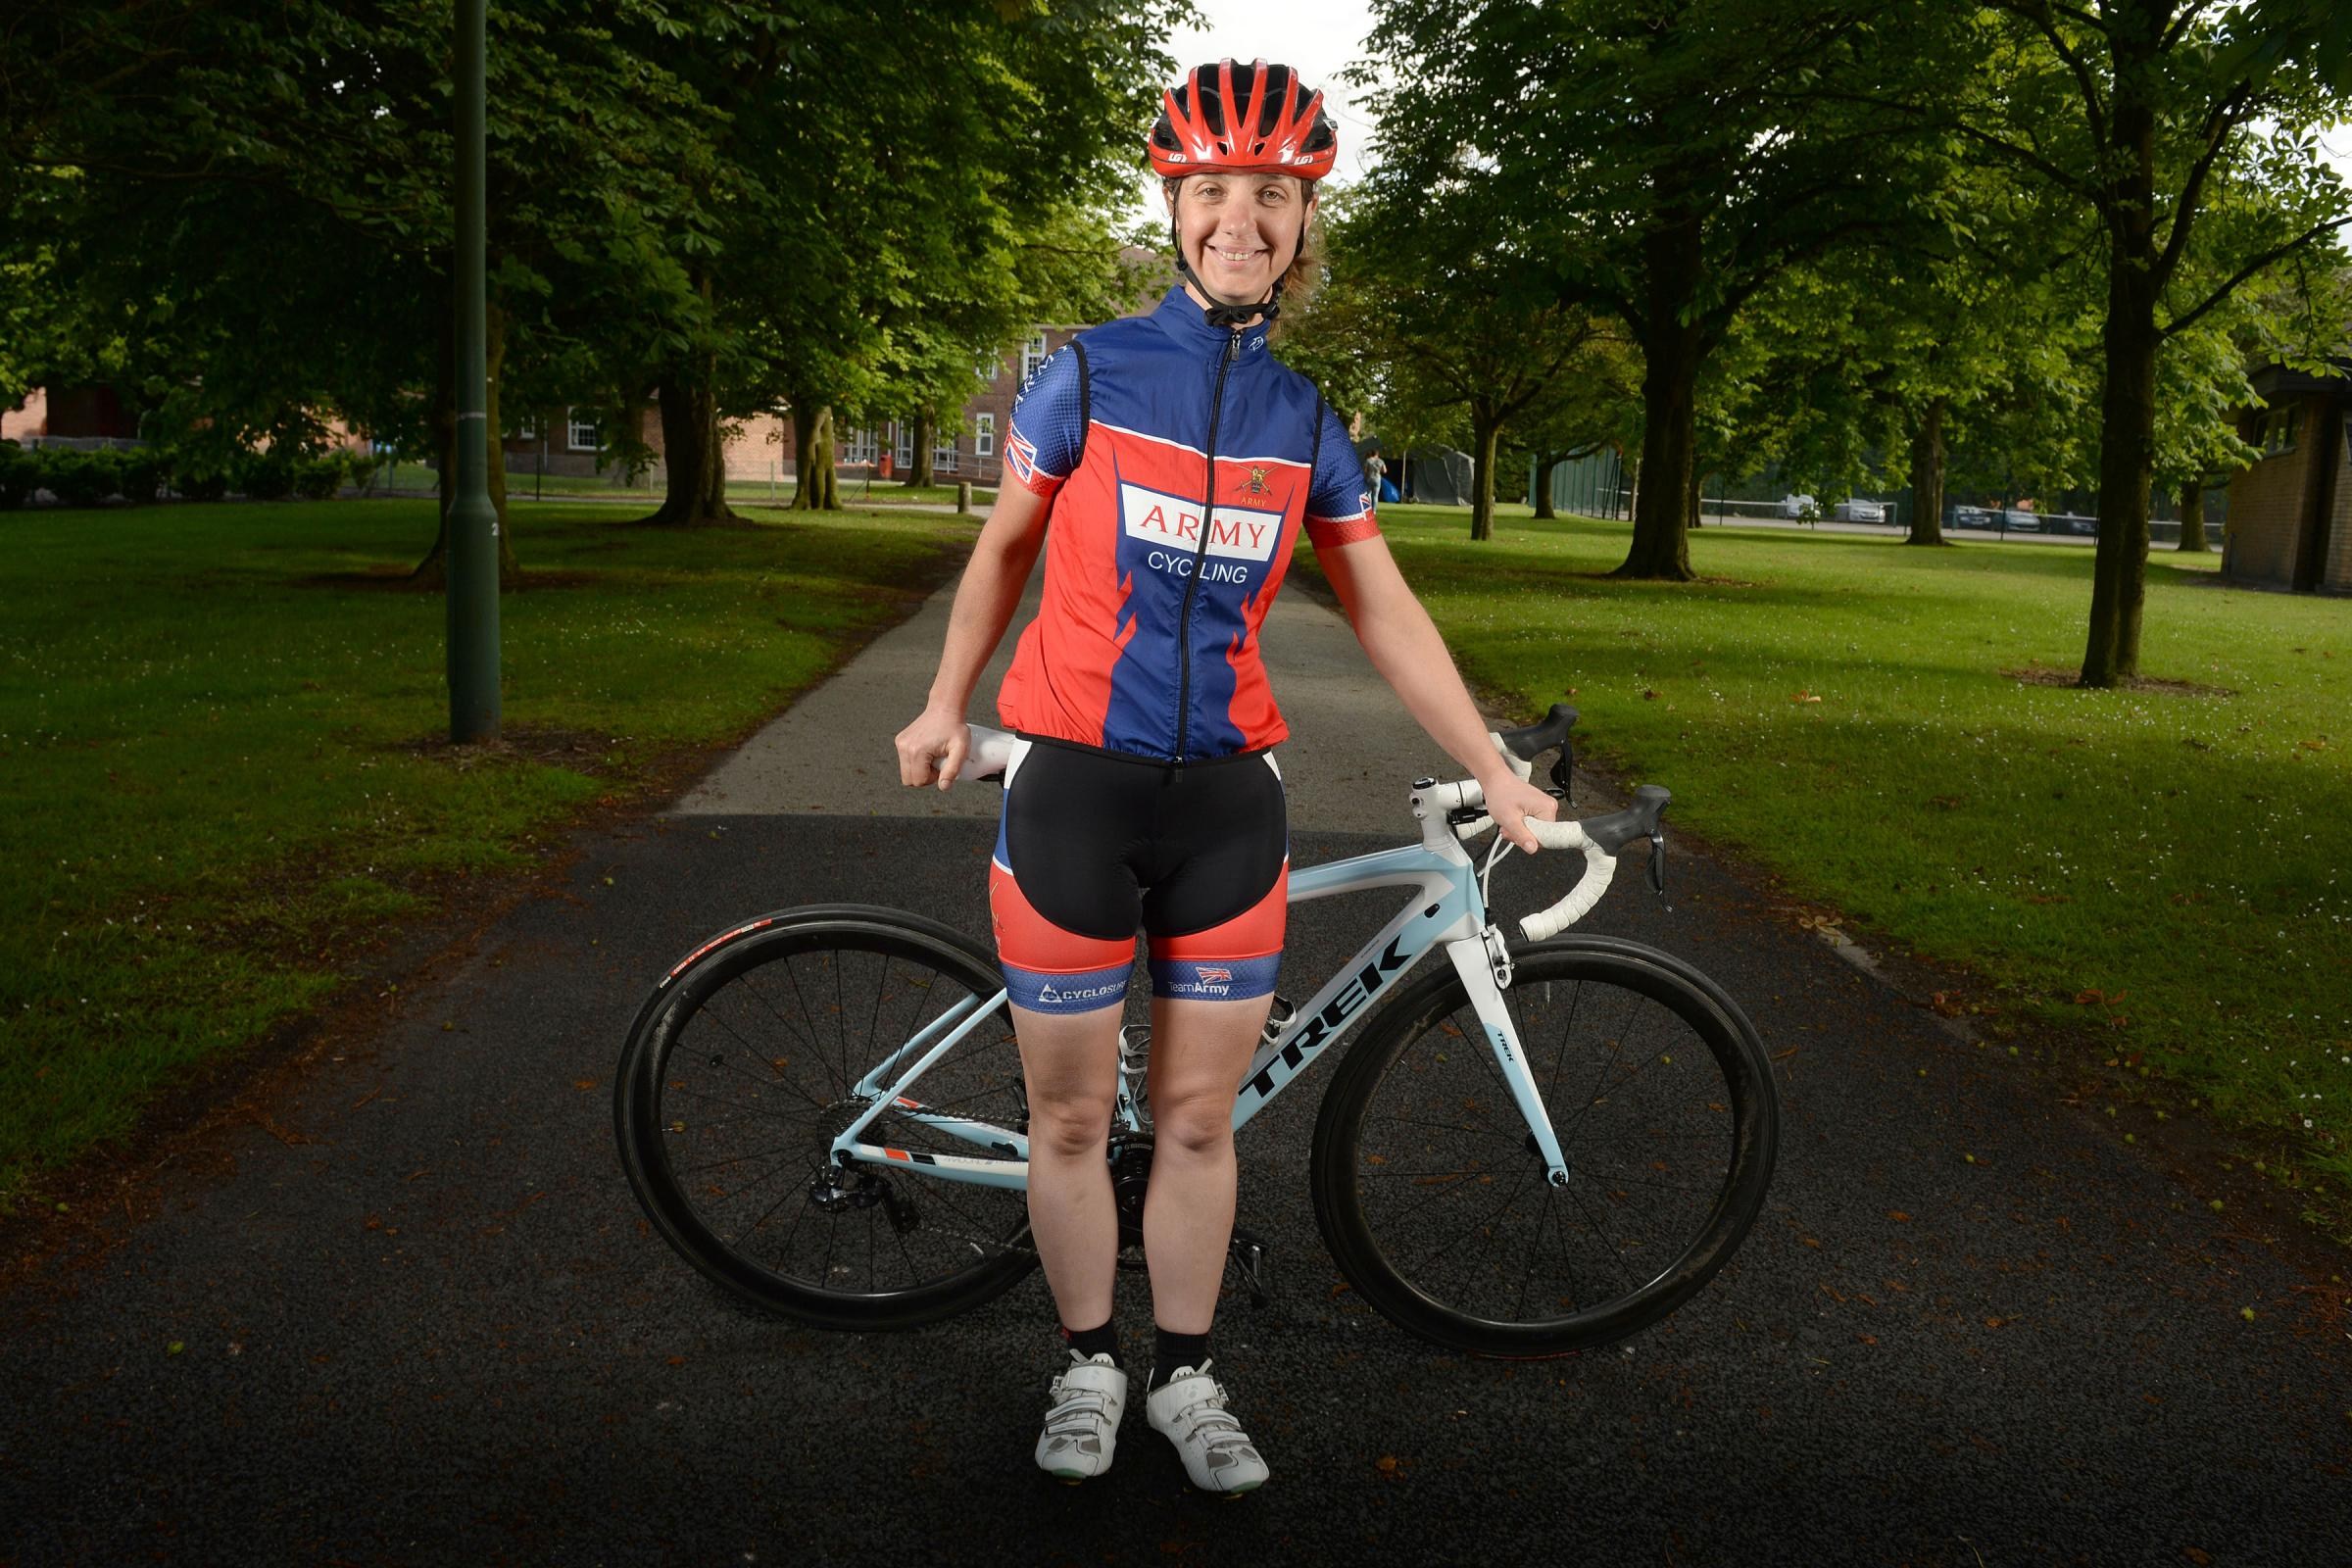 Blaina soldier tests out Tour de France route